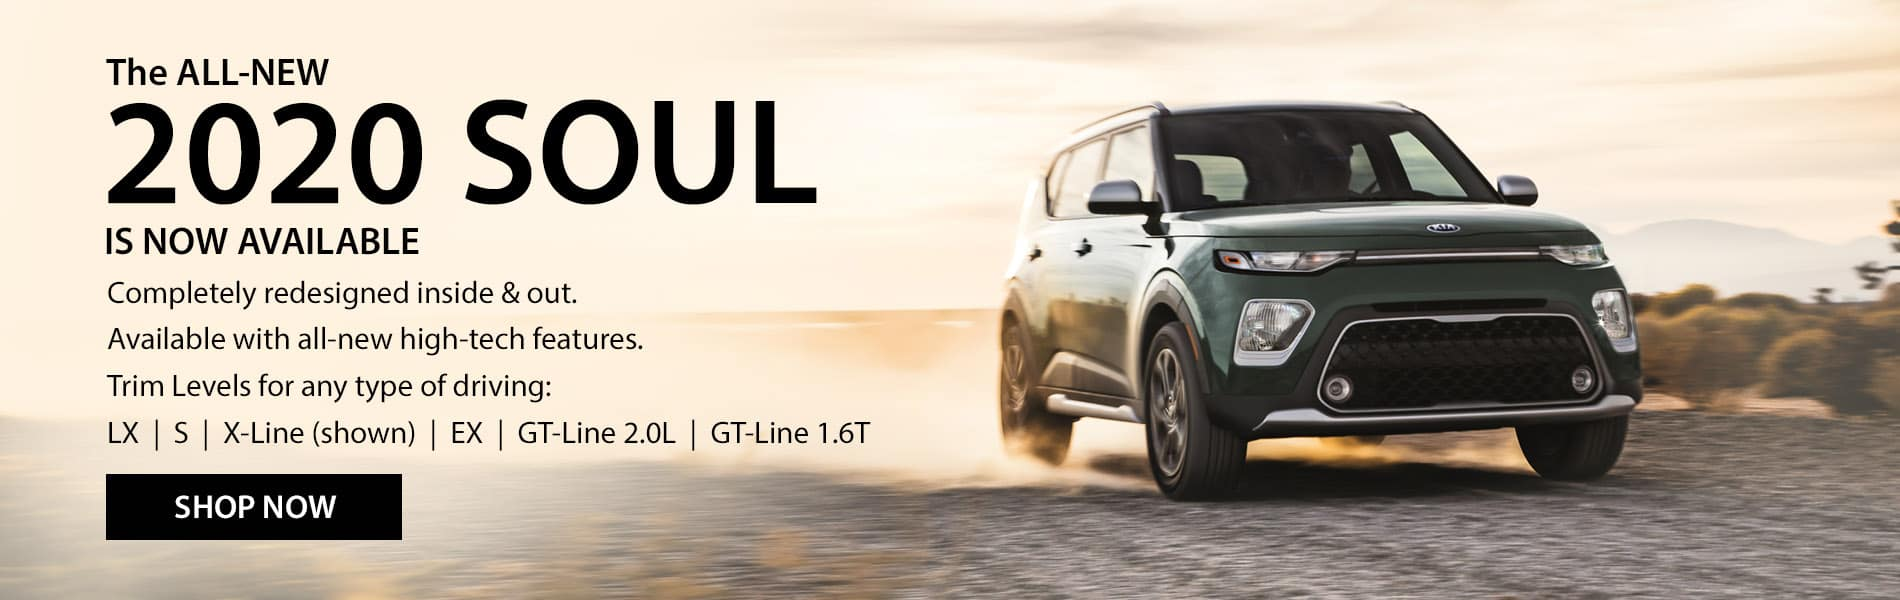 The All-New 2020 Kia Soul is now available at Beaveton Kia